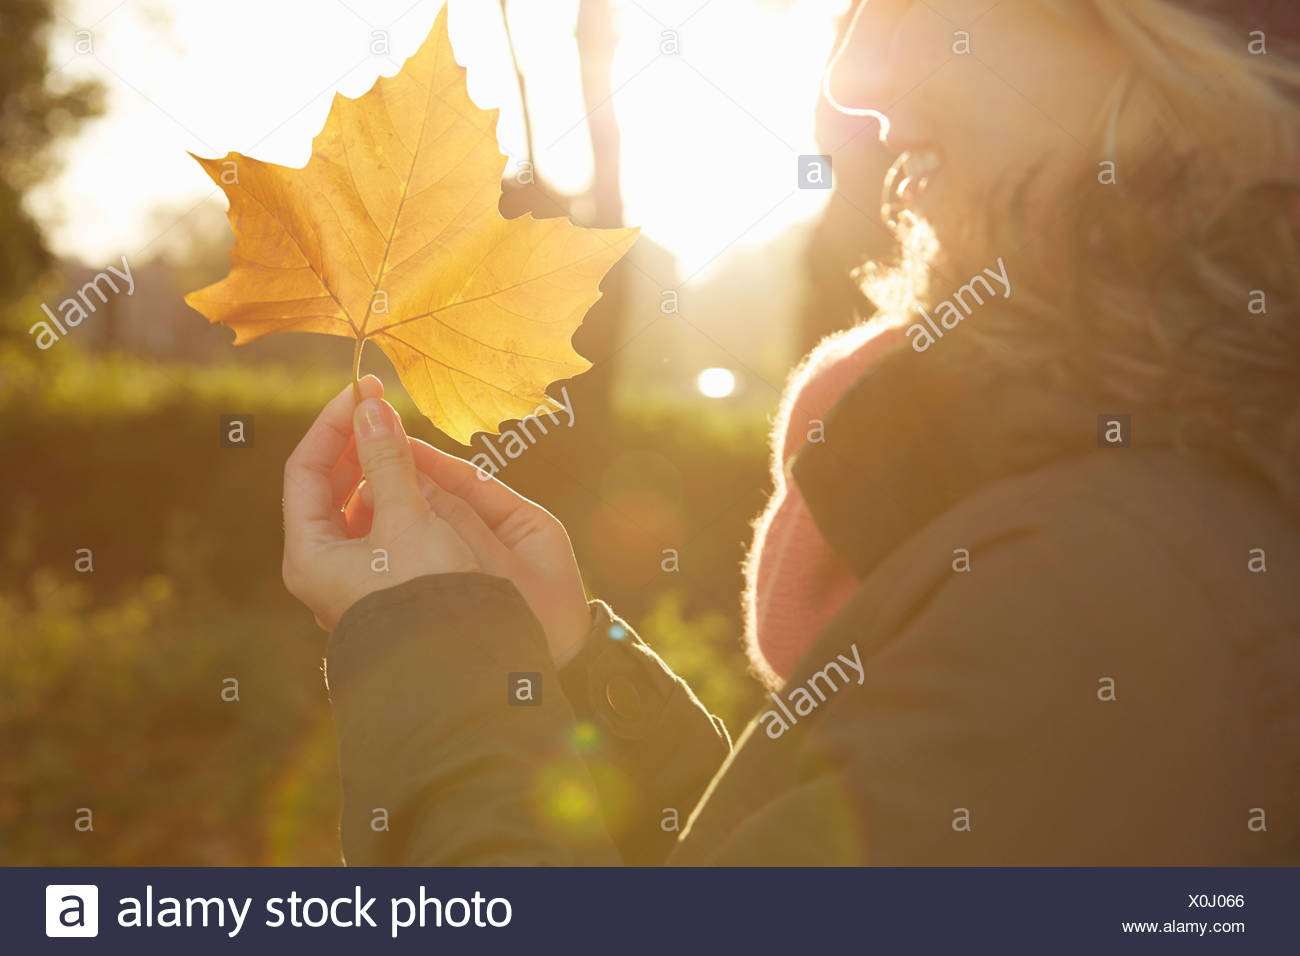 Portrait of young woman in park, holding autumn leaf - Stock Image